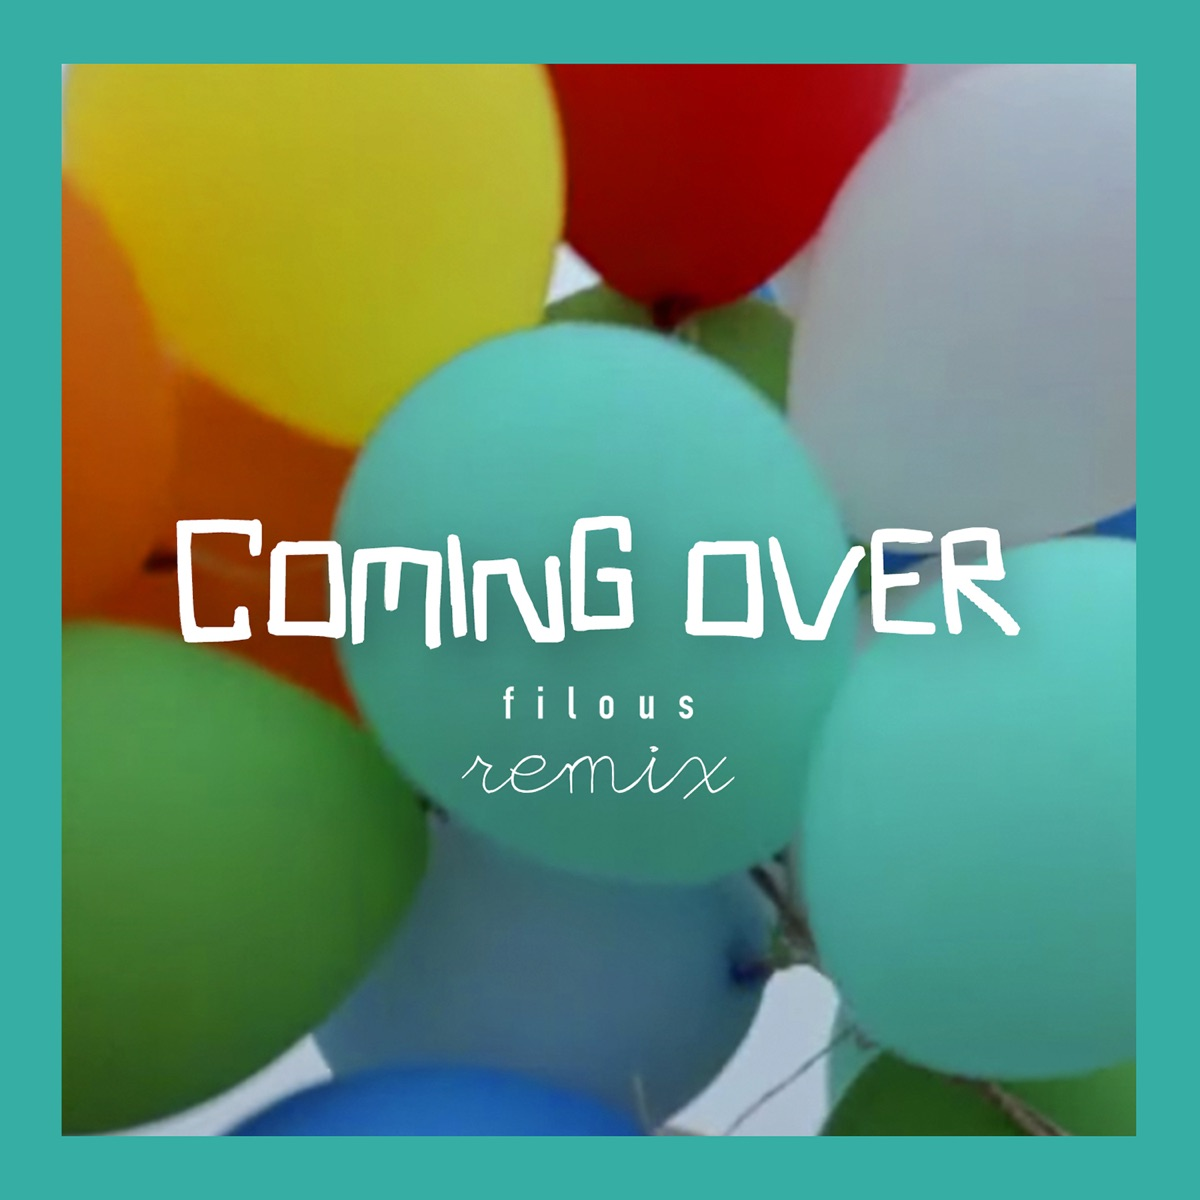 Coming Over Album Cover by James Hersey